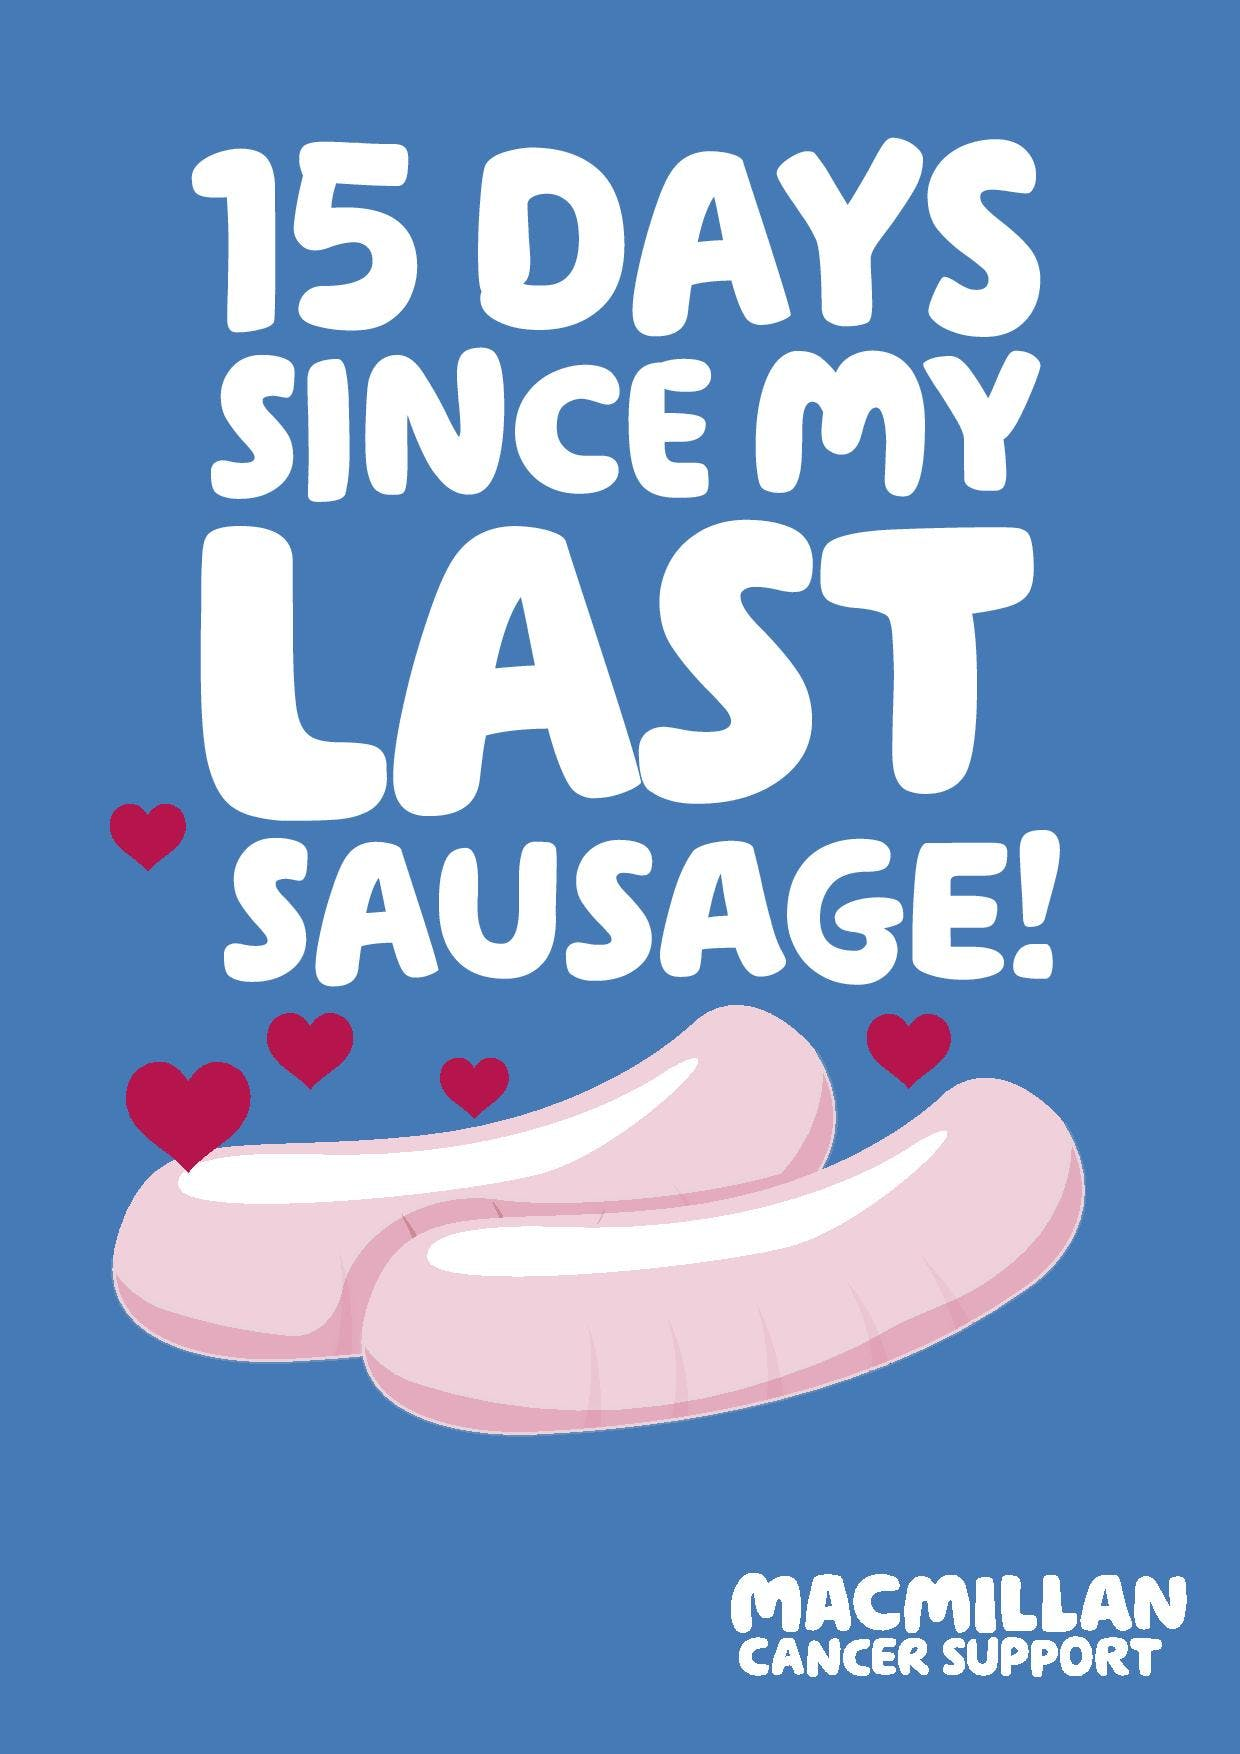 Blue background text: 15 days since my last sausage